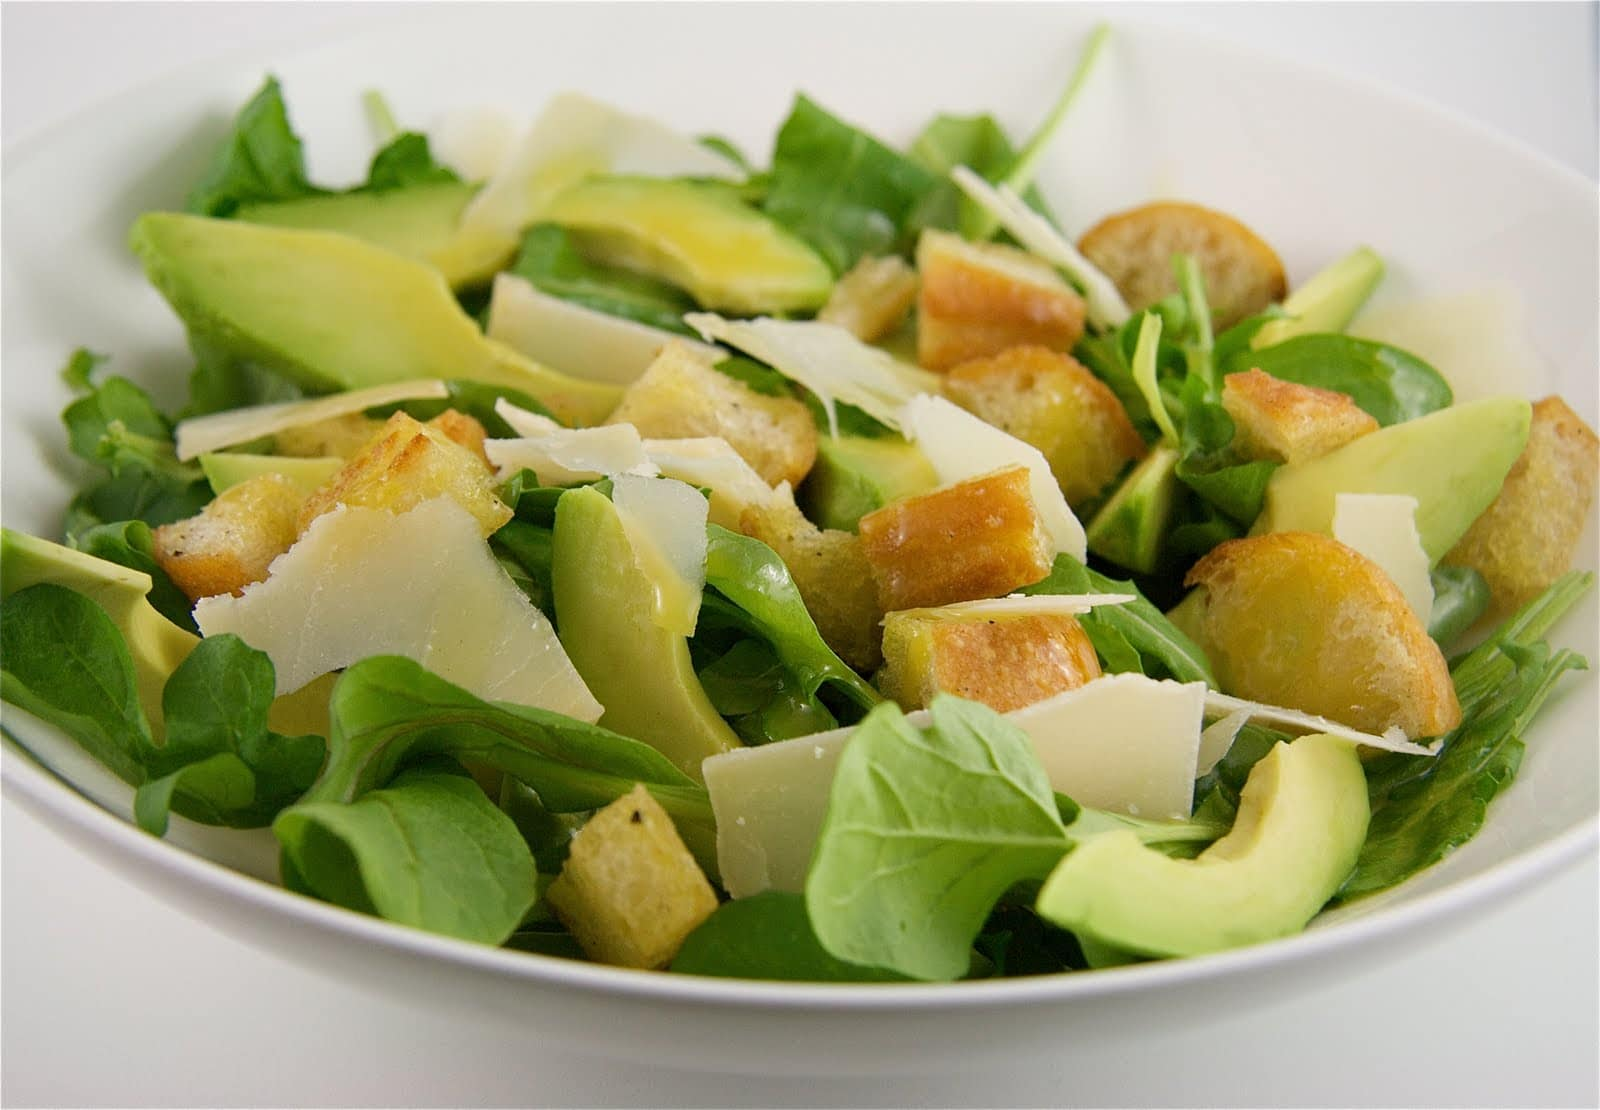 According To The Oxford Companion To Food Salad Is A Term Derived From The Latin Sal Salt Which Yielded The Form Salata Salted Things Such As Raw